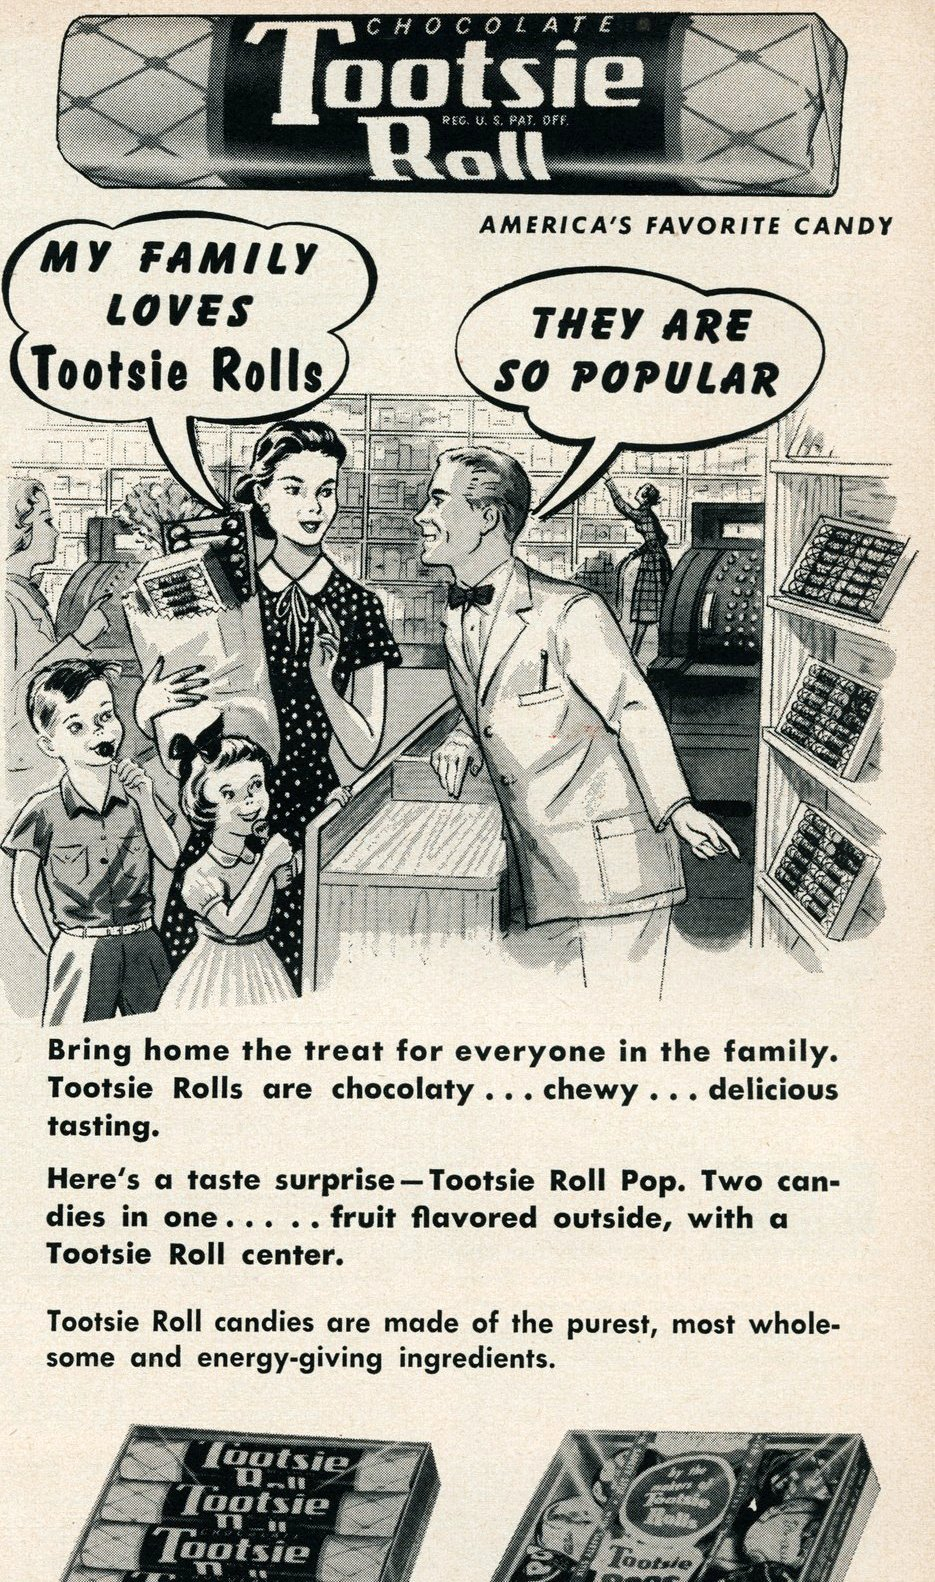 Chocolate Tootsie Roll America's favorite candy (1955)